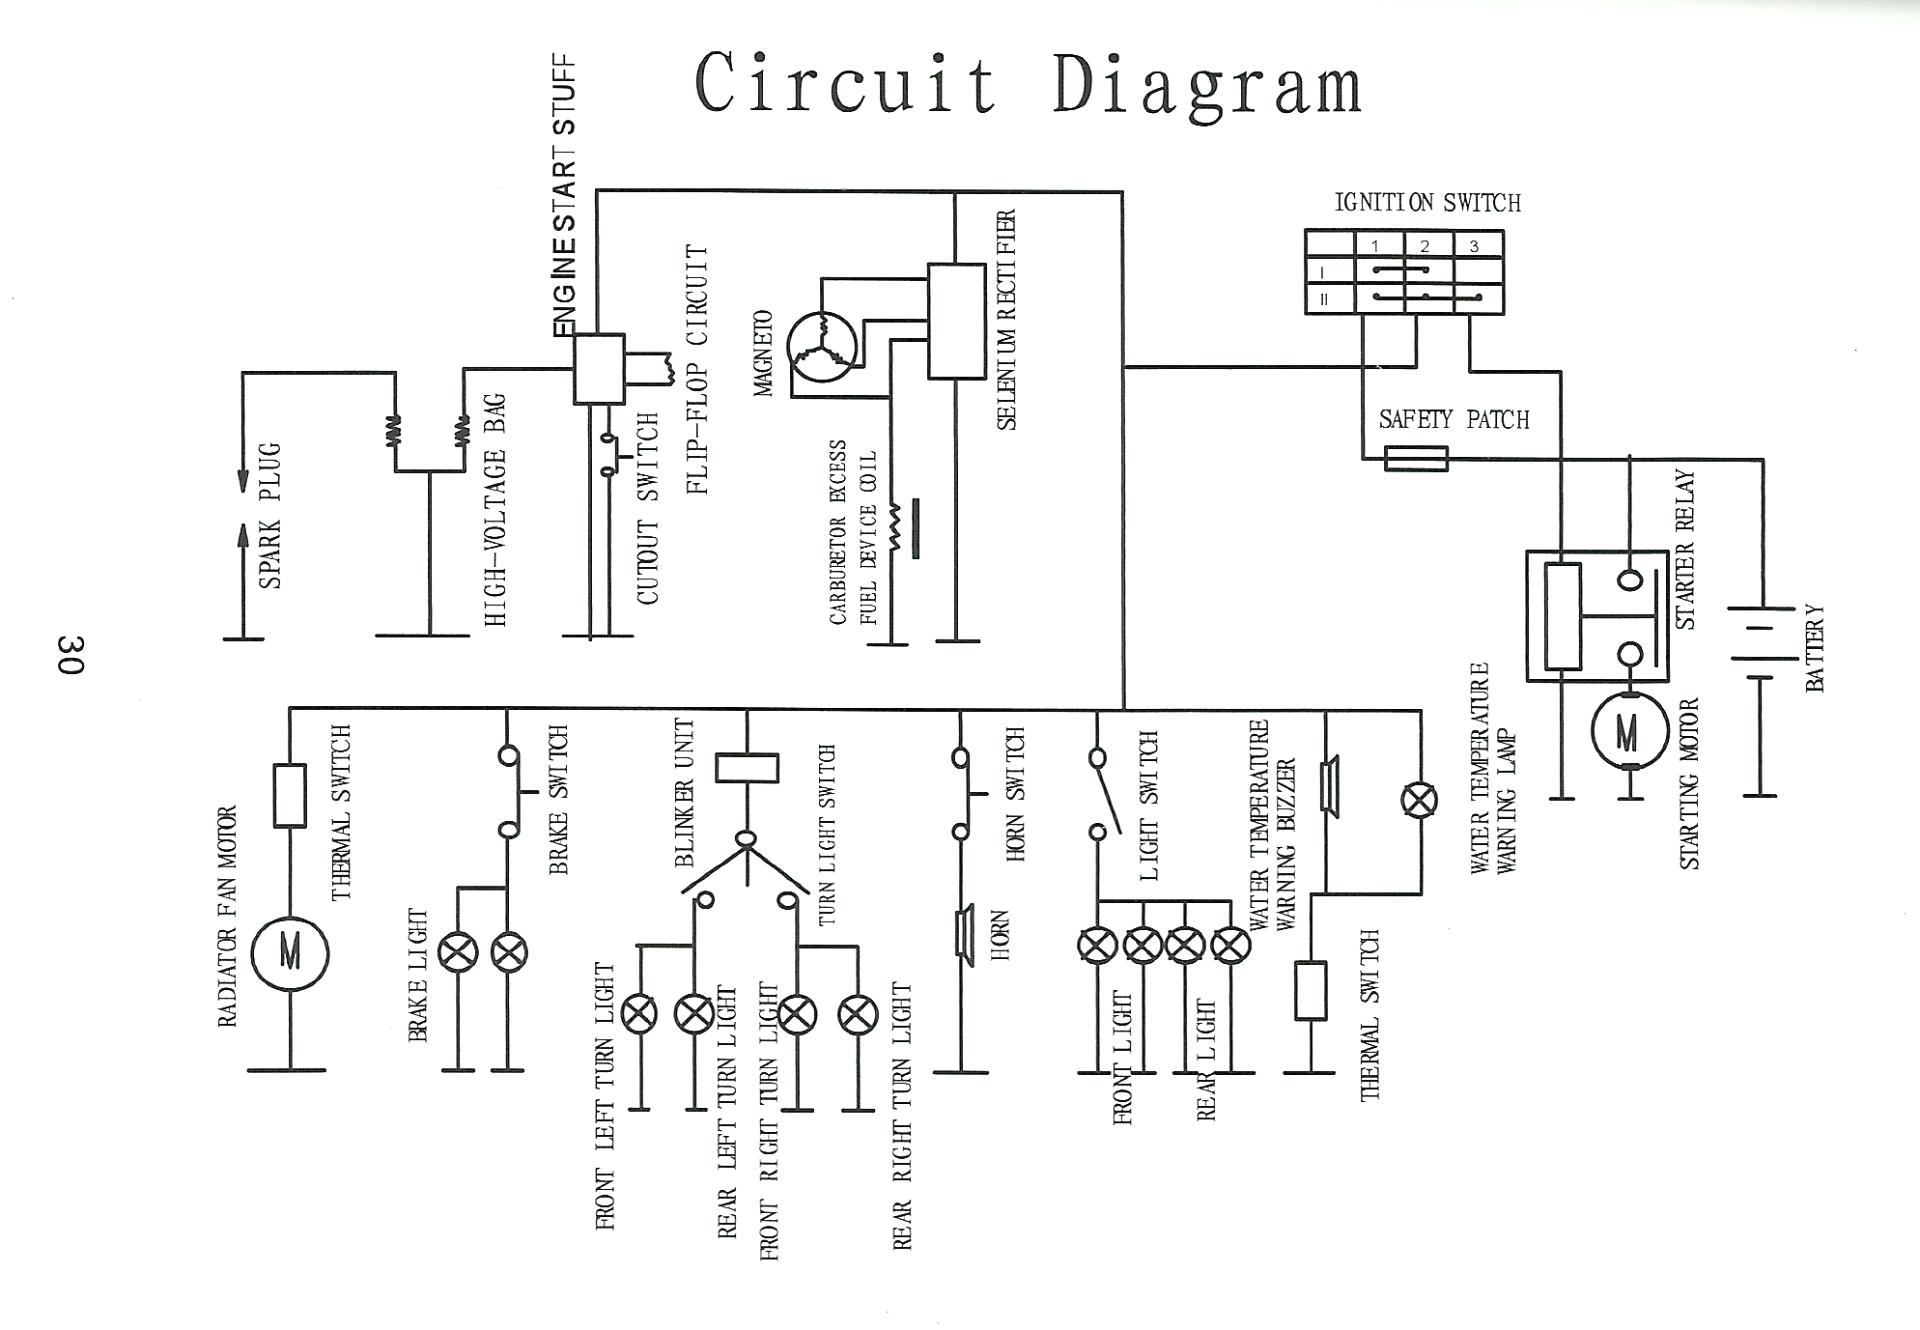 scooter ignition switch wiring diagram Collection-Moped Engine Diagram Lovely Scooter Cdi Wiring Diagram Moped Ignition Switch New Free Download 9-r